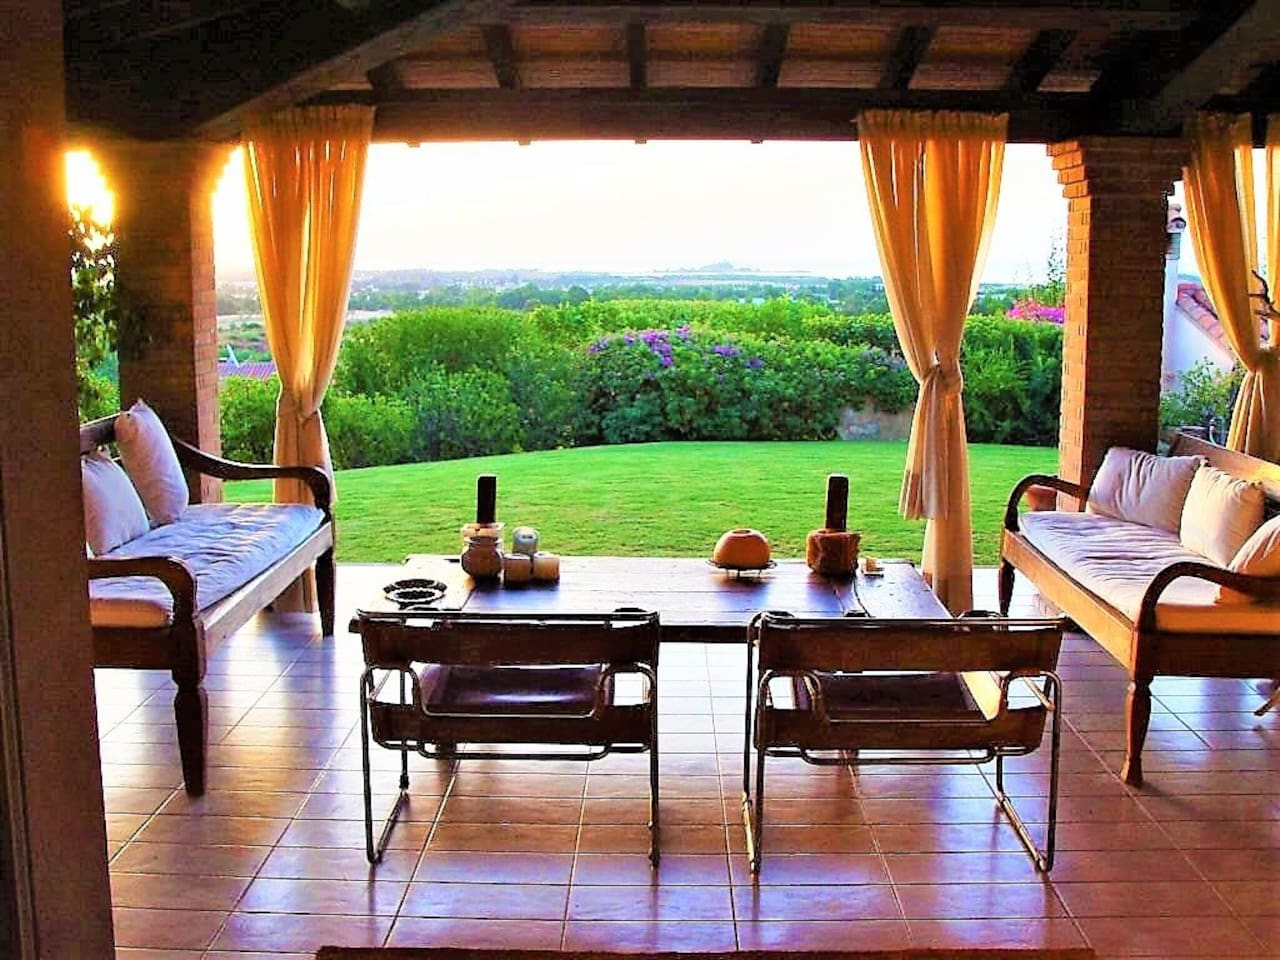 One of the many panoramic points of the house. This veranda has two benches and an old indian table to take a coffèe or relax with a book in front of the garden and the sea